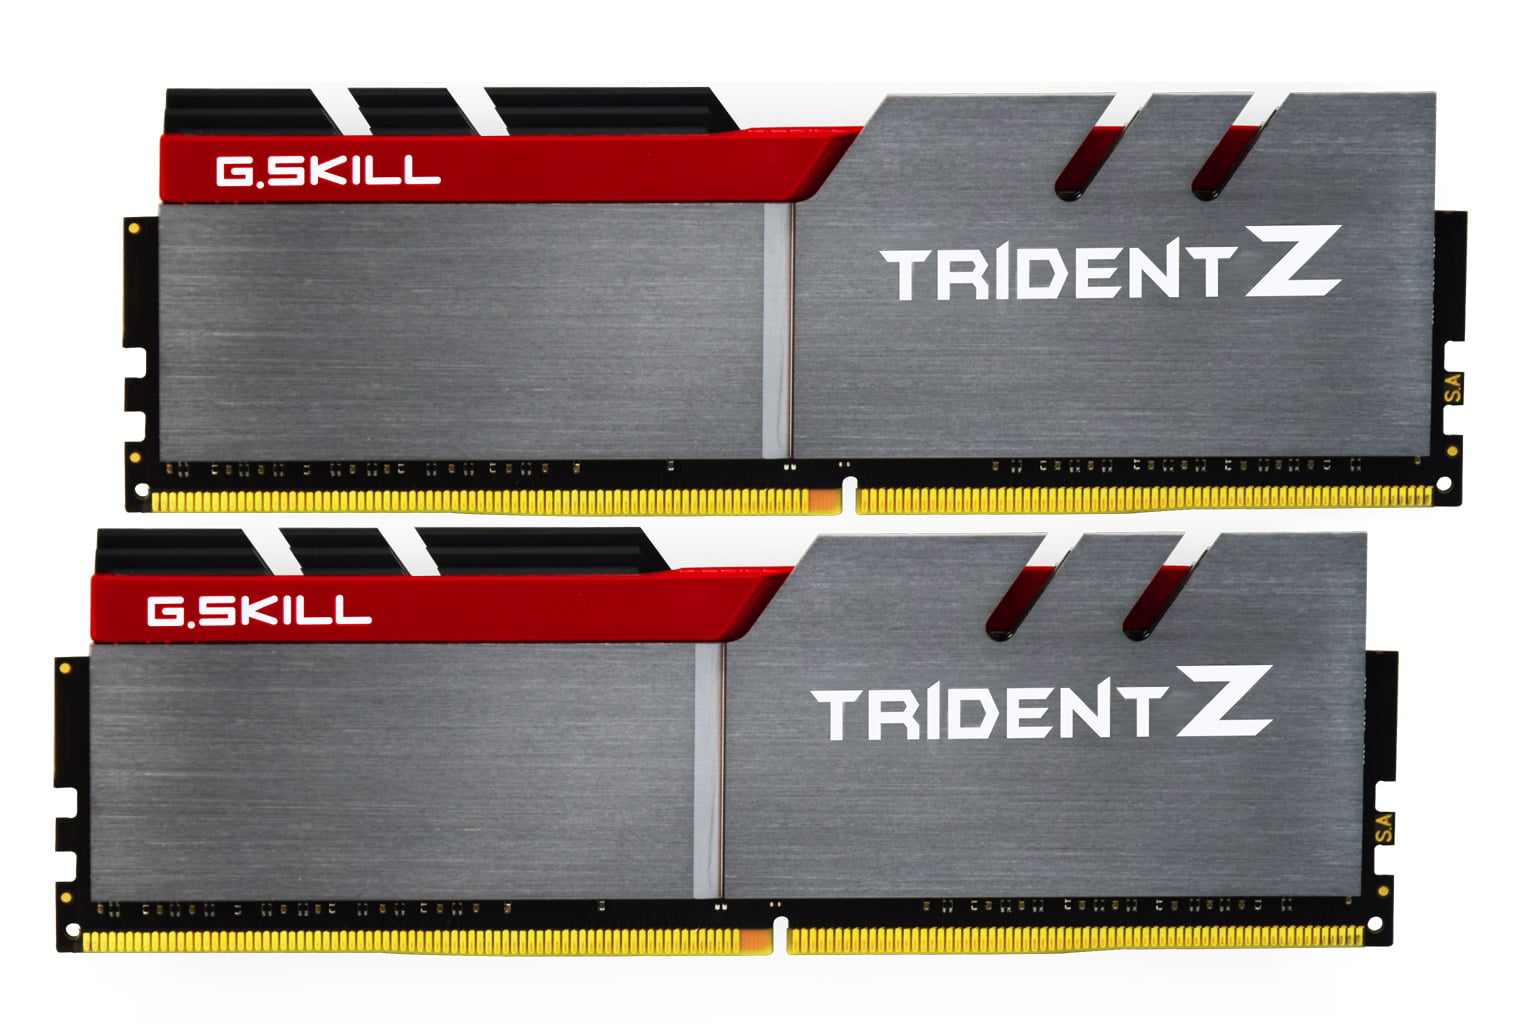 8GB G.Skill DDR4 Trident Z 4000Mhz PC4-32000 CL19 (19-21-21-41) 1.35V Dual Channel Kit (2x4GB)